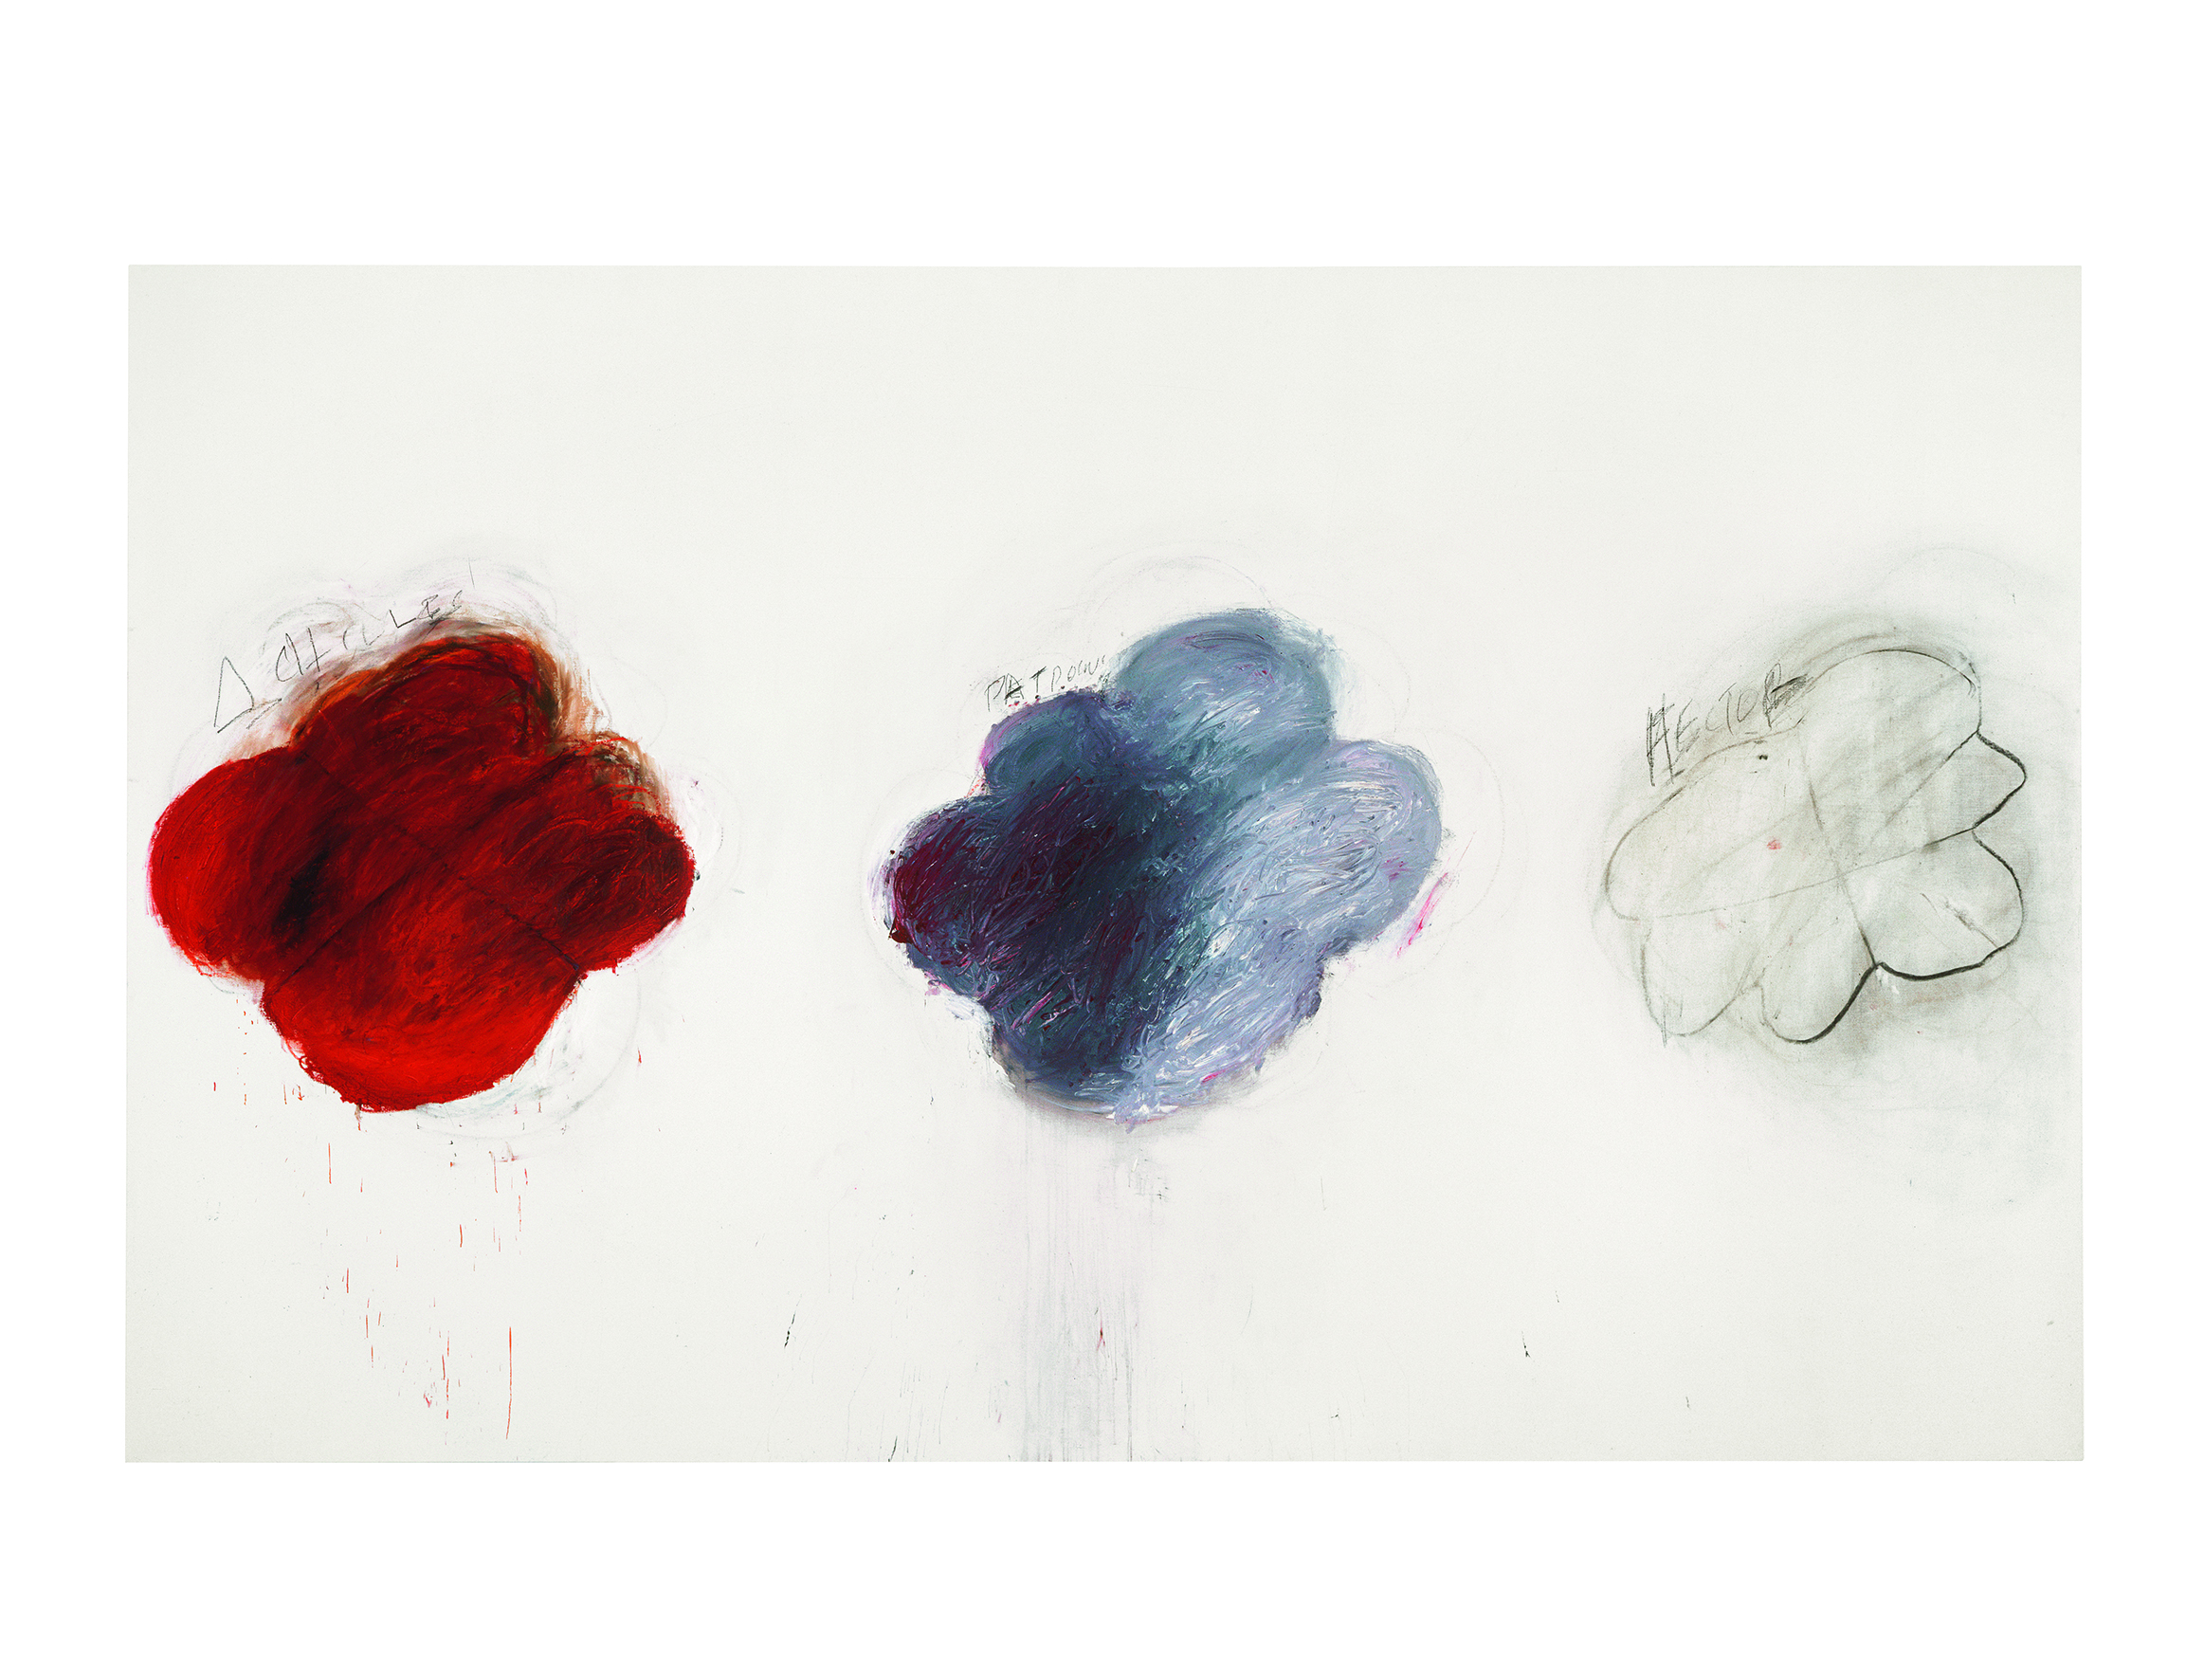 Fifty Days at Iliam Shades of Achilles, Patroclus and Hector (1978) Cy Twombly   © Courtesy of Philadelphia Museum of Art, Philadelphie